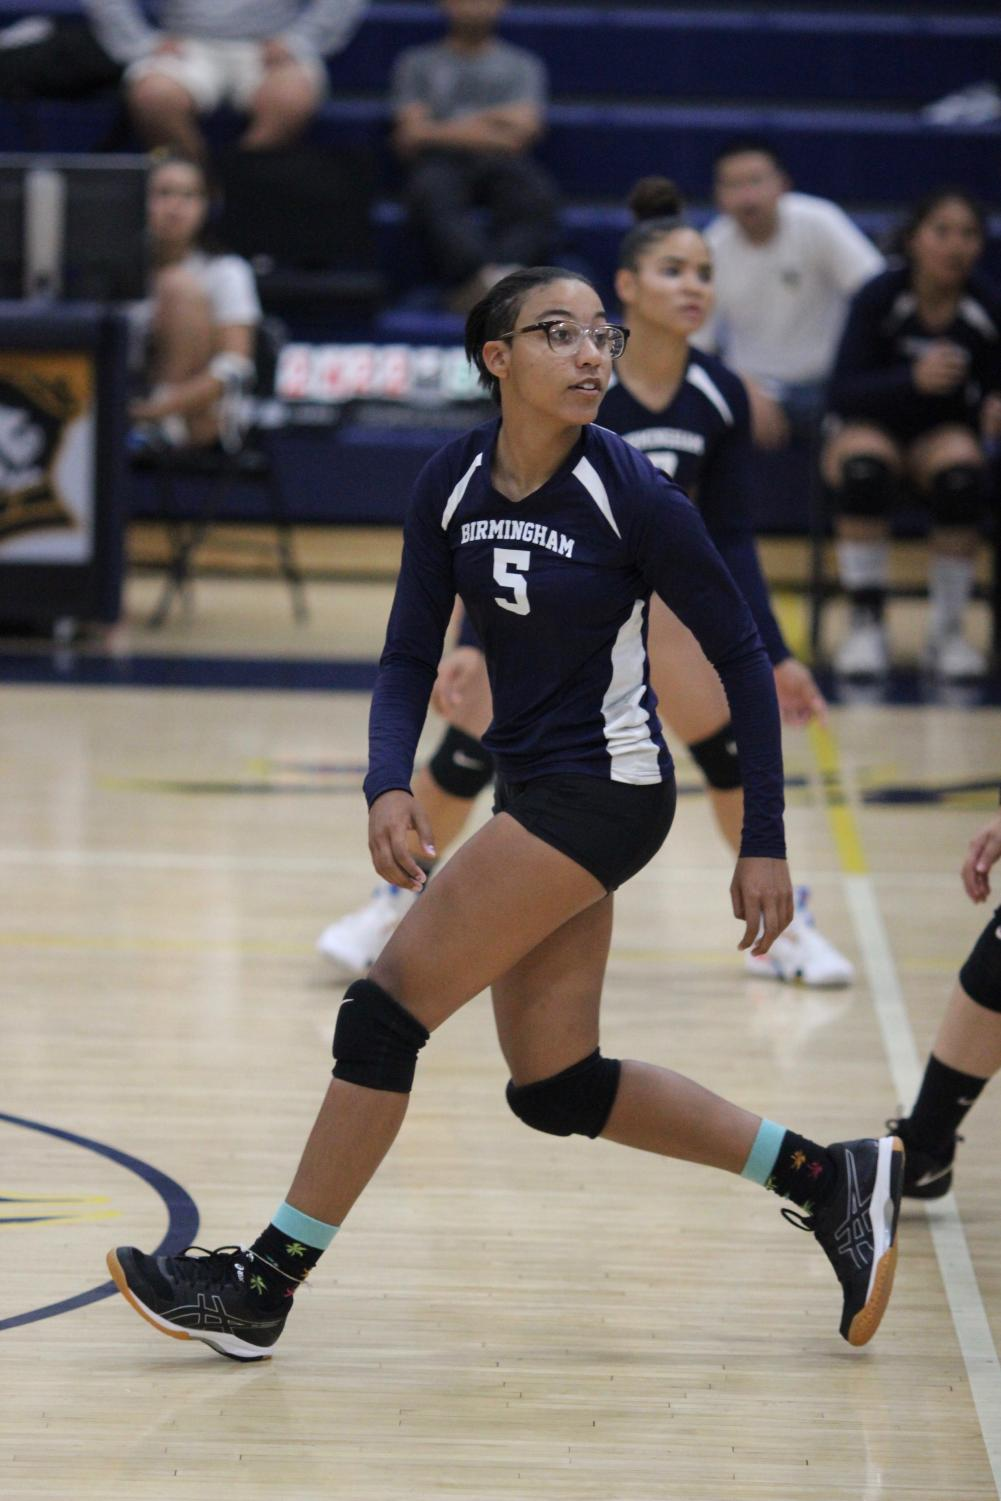 Freshman Naamah Silcott prepares to hit the ball in a game against Chatsworth Charter High School on Sept. 26.